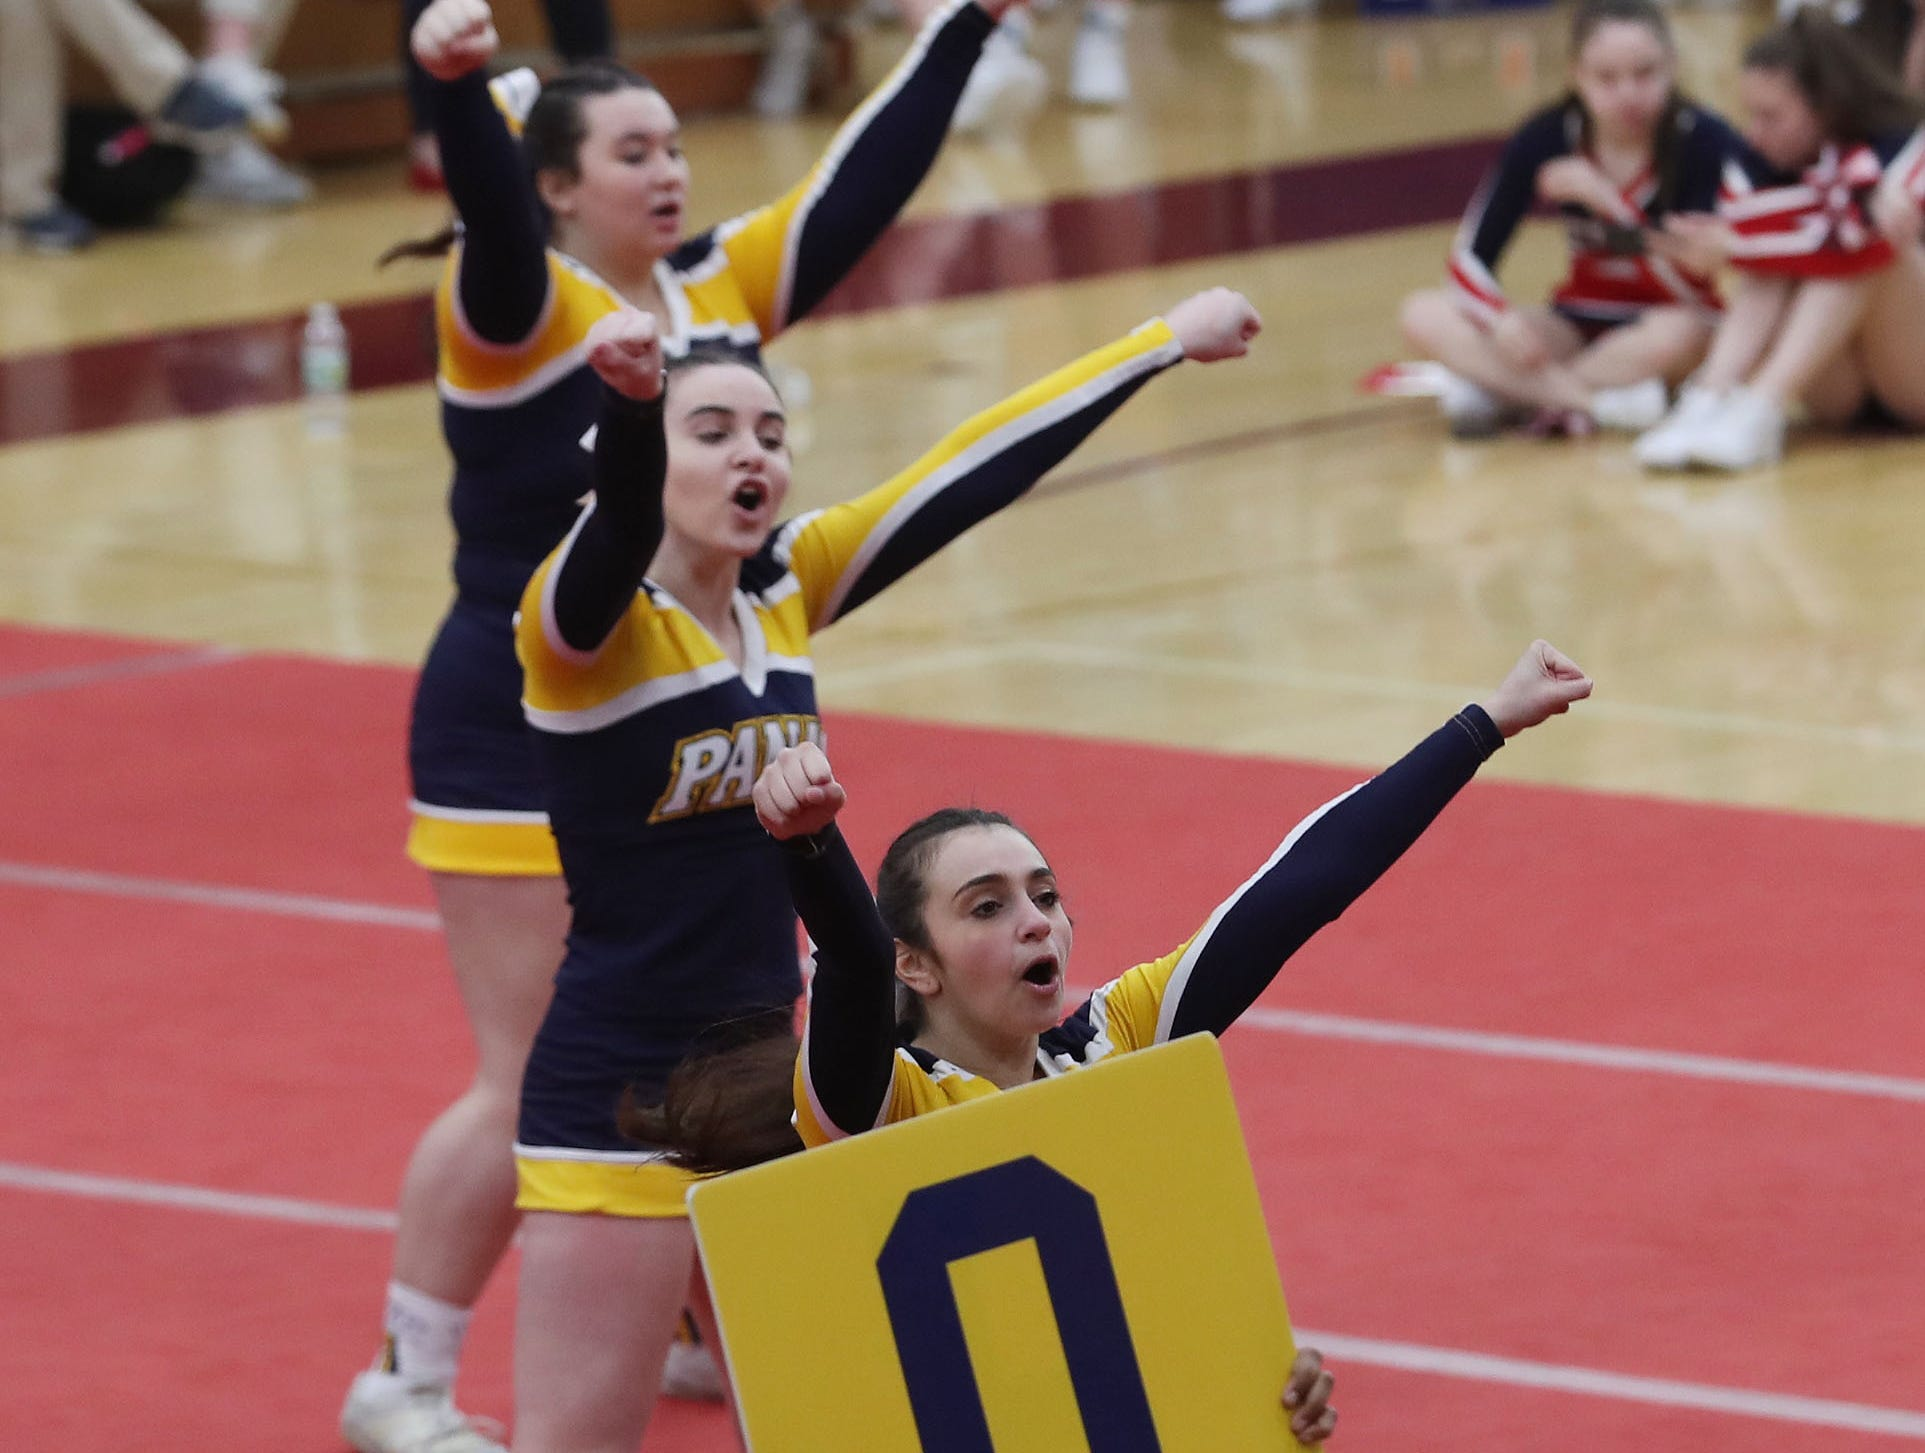 Walter Panas High School competes during the Section 1 cheerleading championships at Arlington High School in Freedom Plains Feb. 16, 2019.